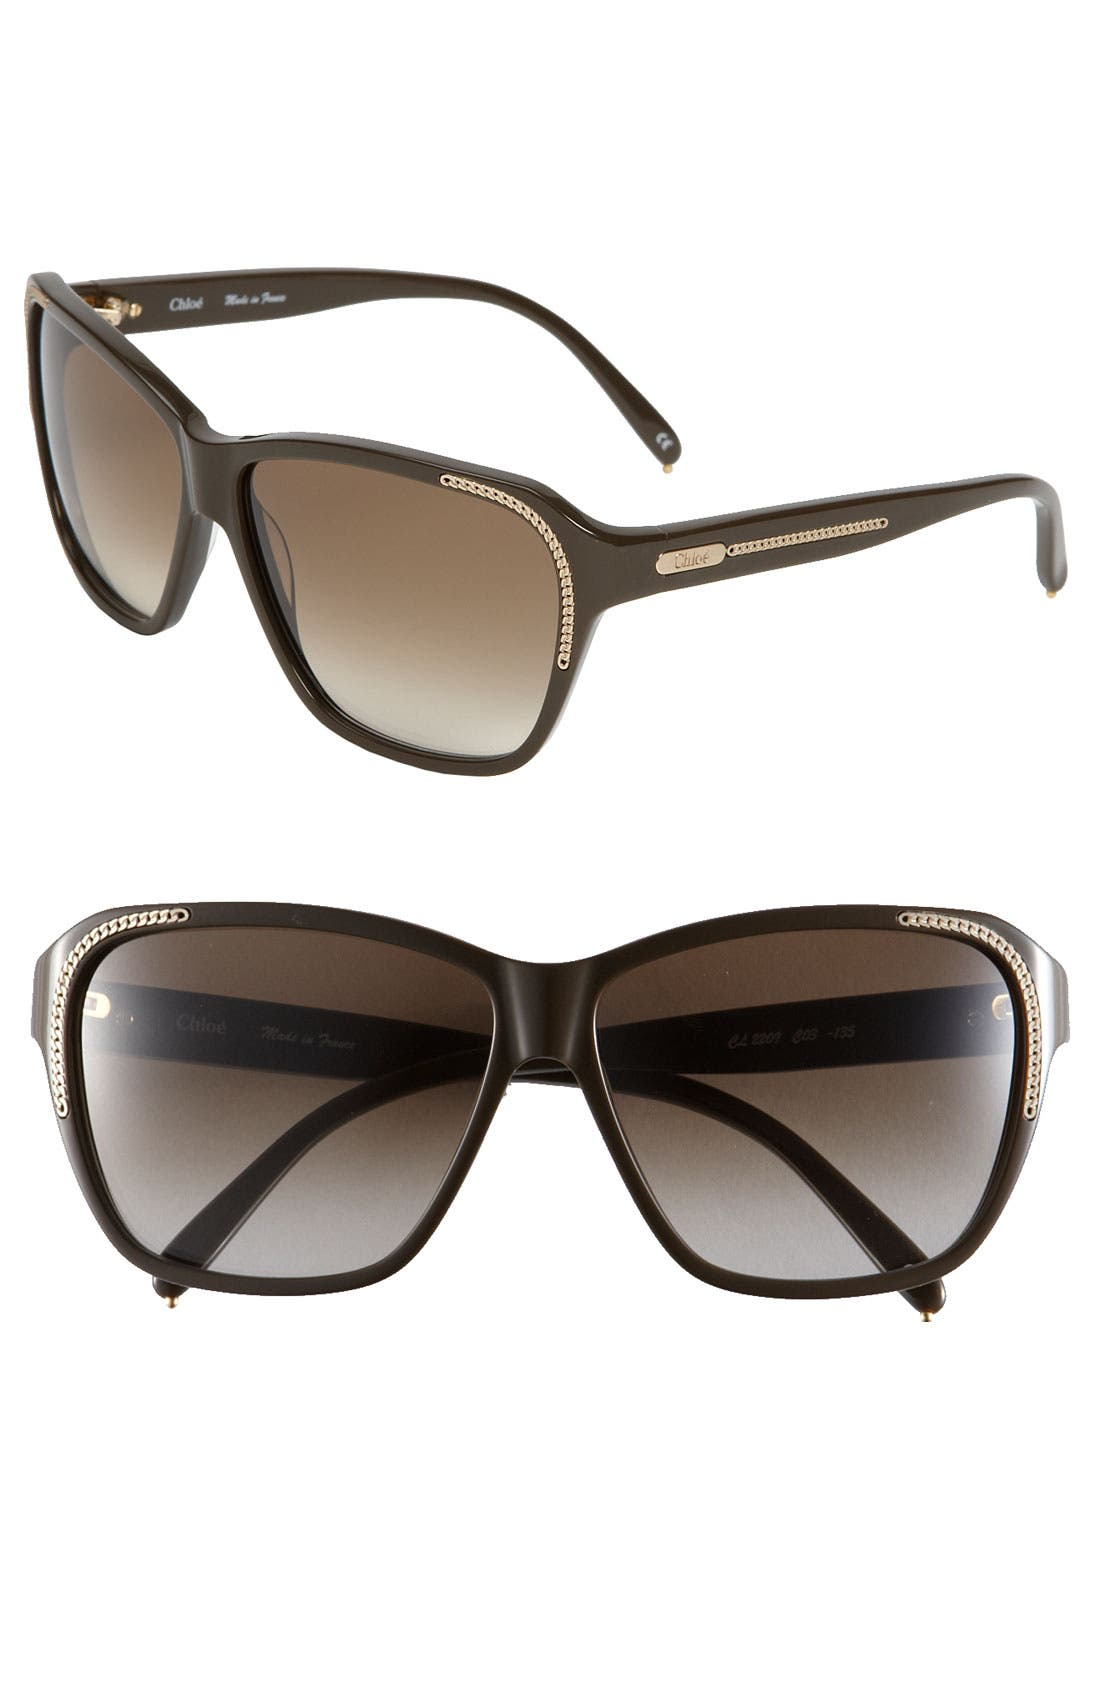 Alternate Image 1 Selected - Chloé '2209' Sunglasses